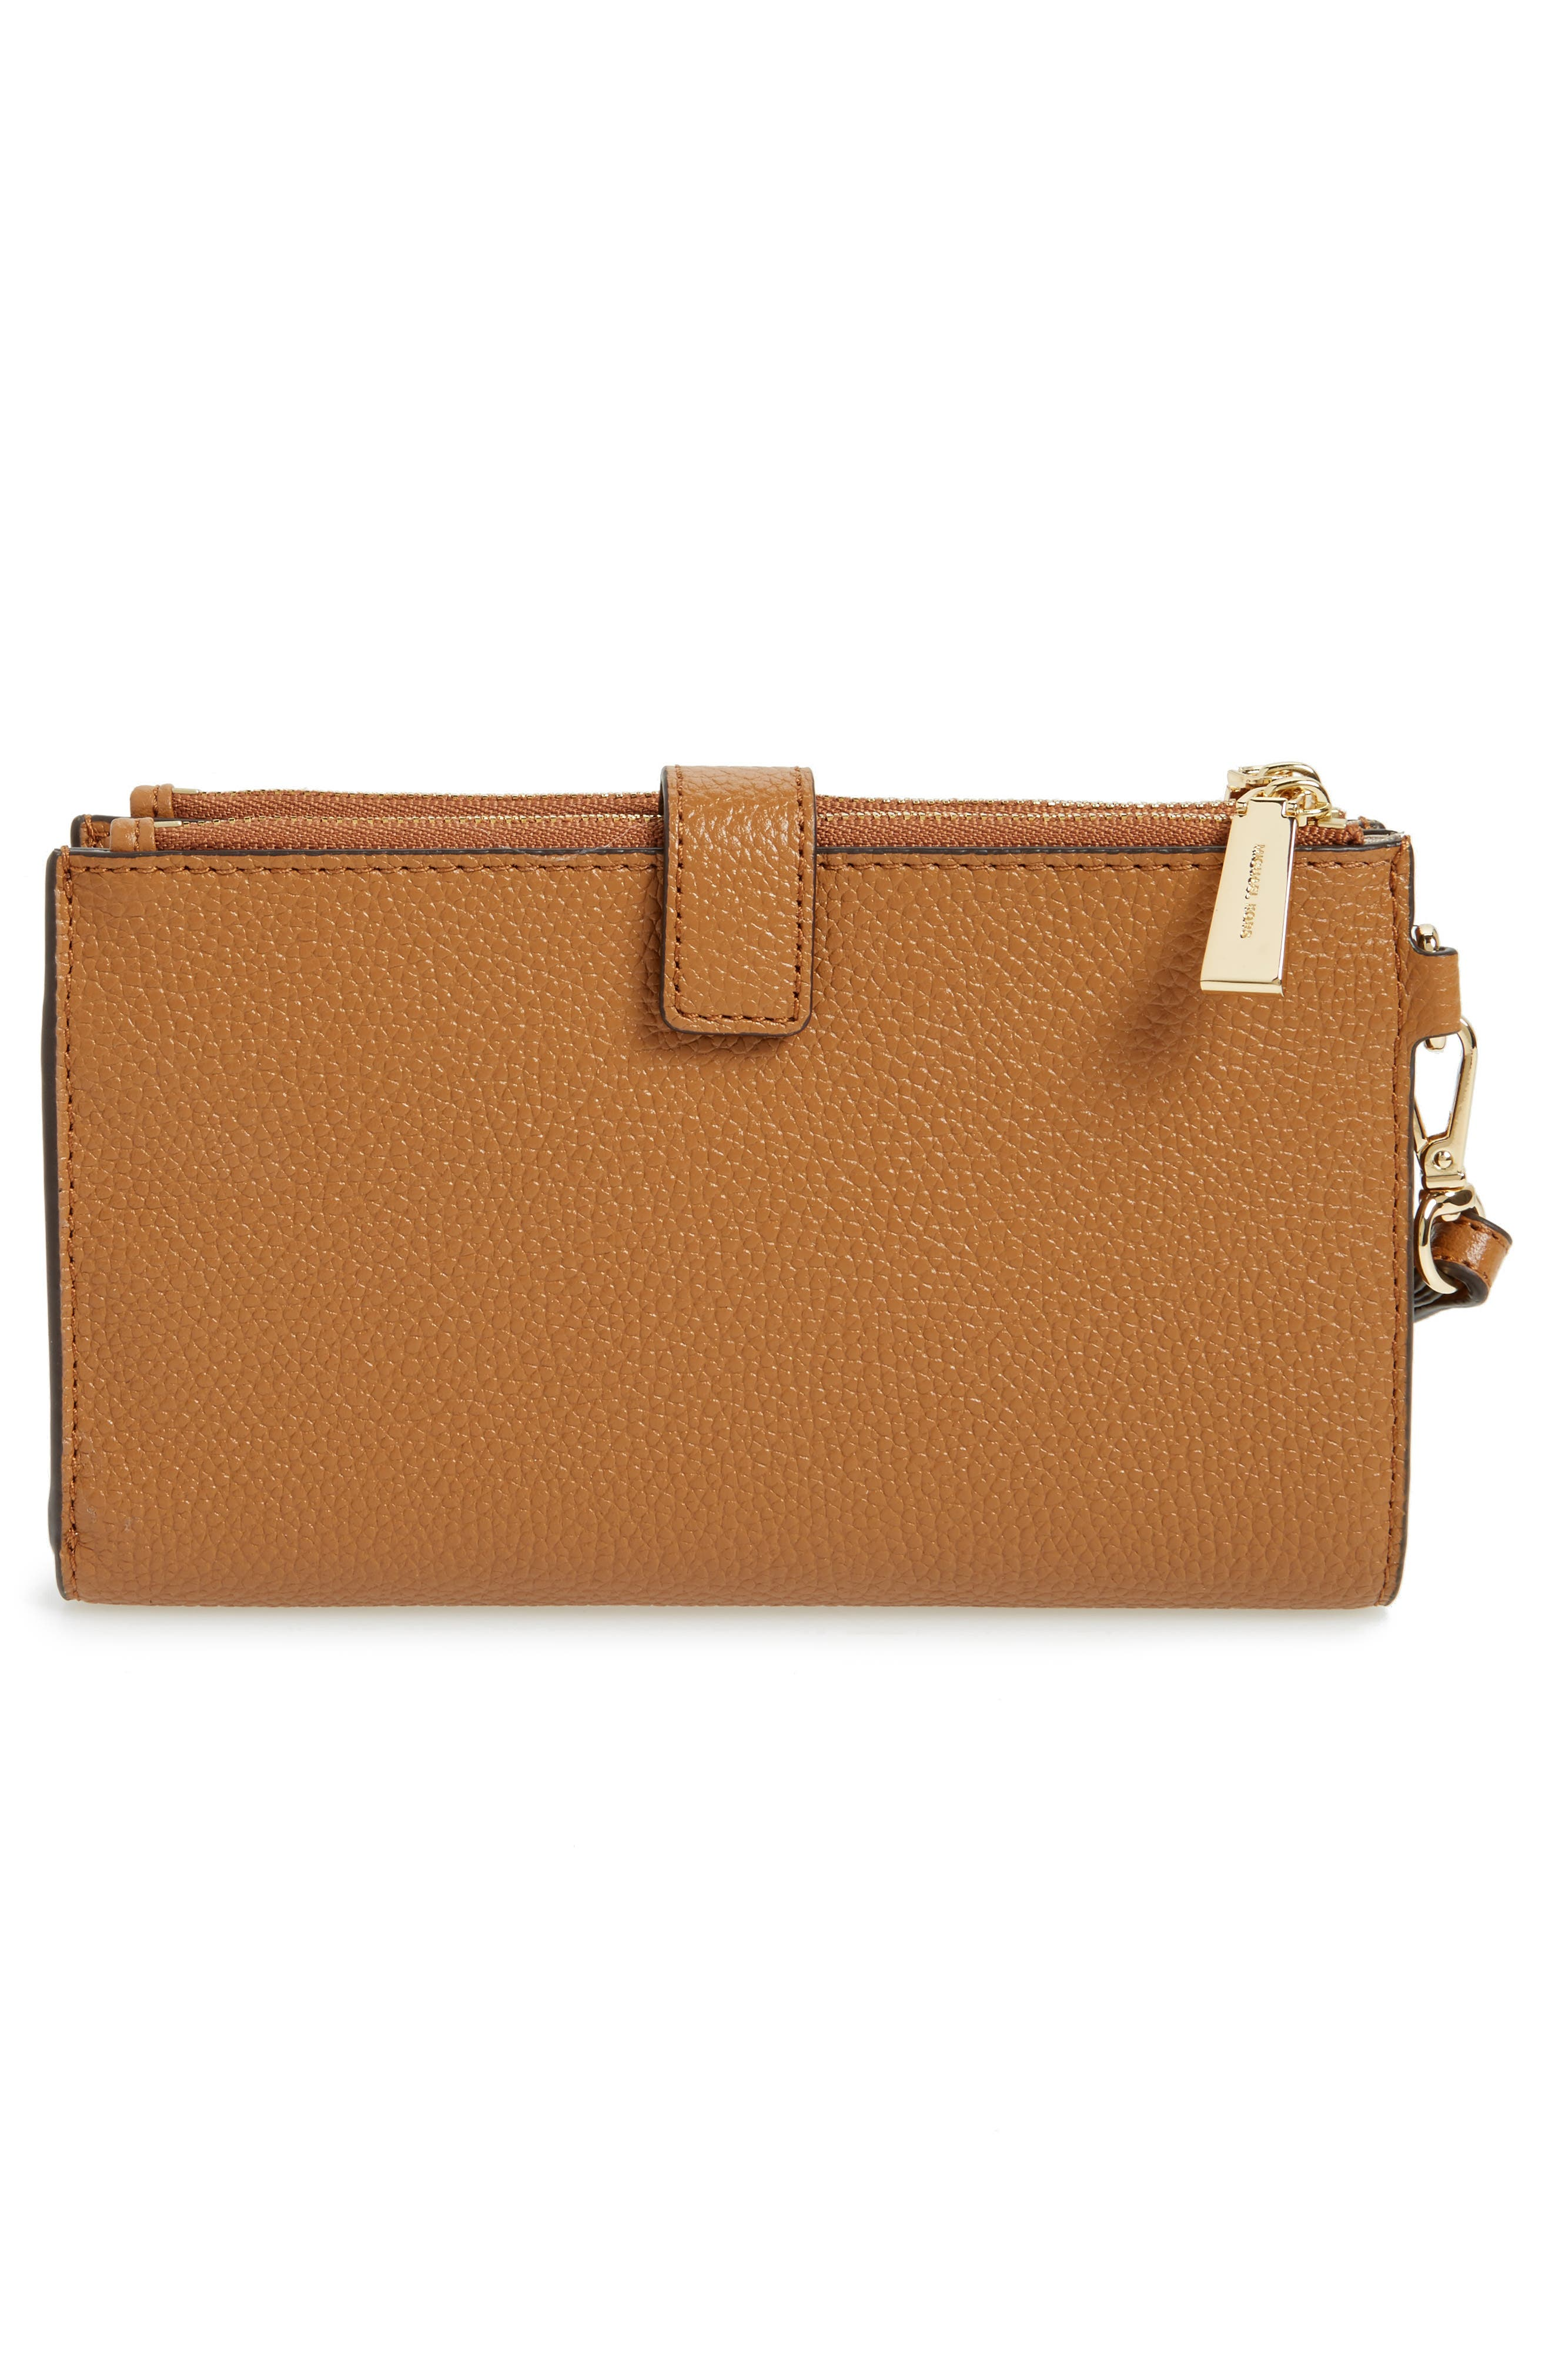 Adele Leather Wristlet,                             Alternate thumbnail 21, color,